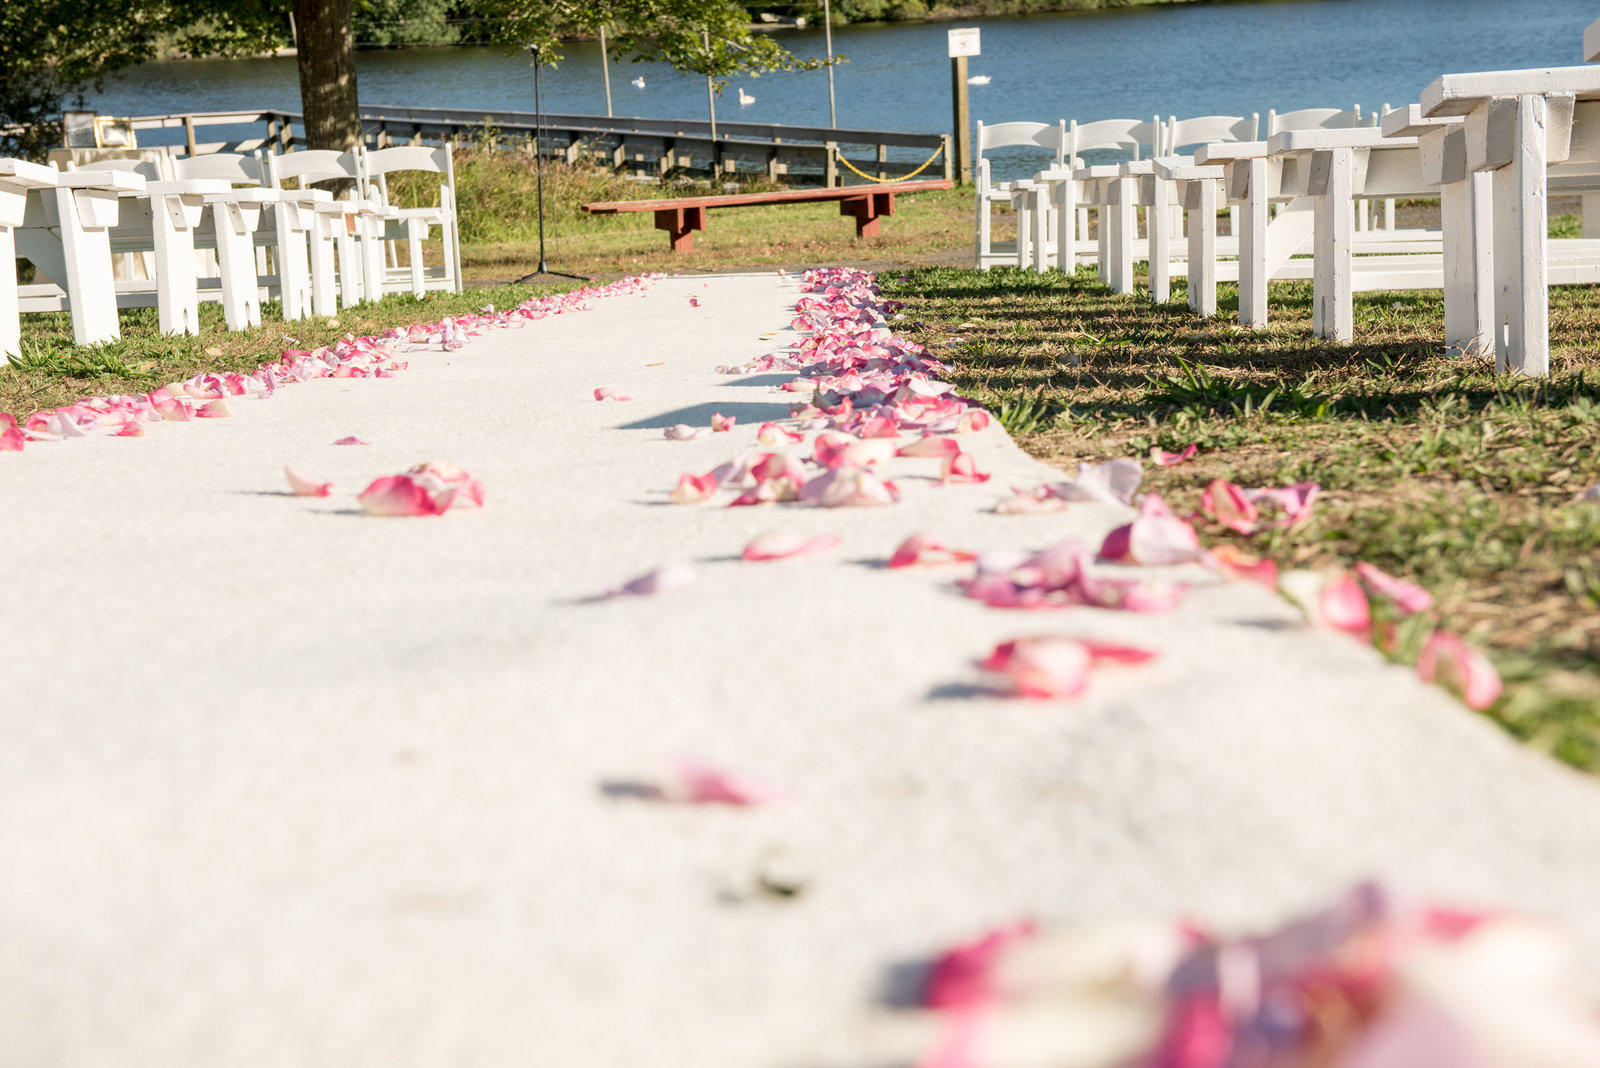 Flowers on the aisle at Camp Pa-Qua-Tuck